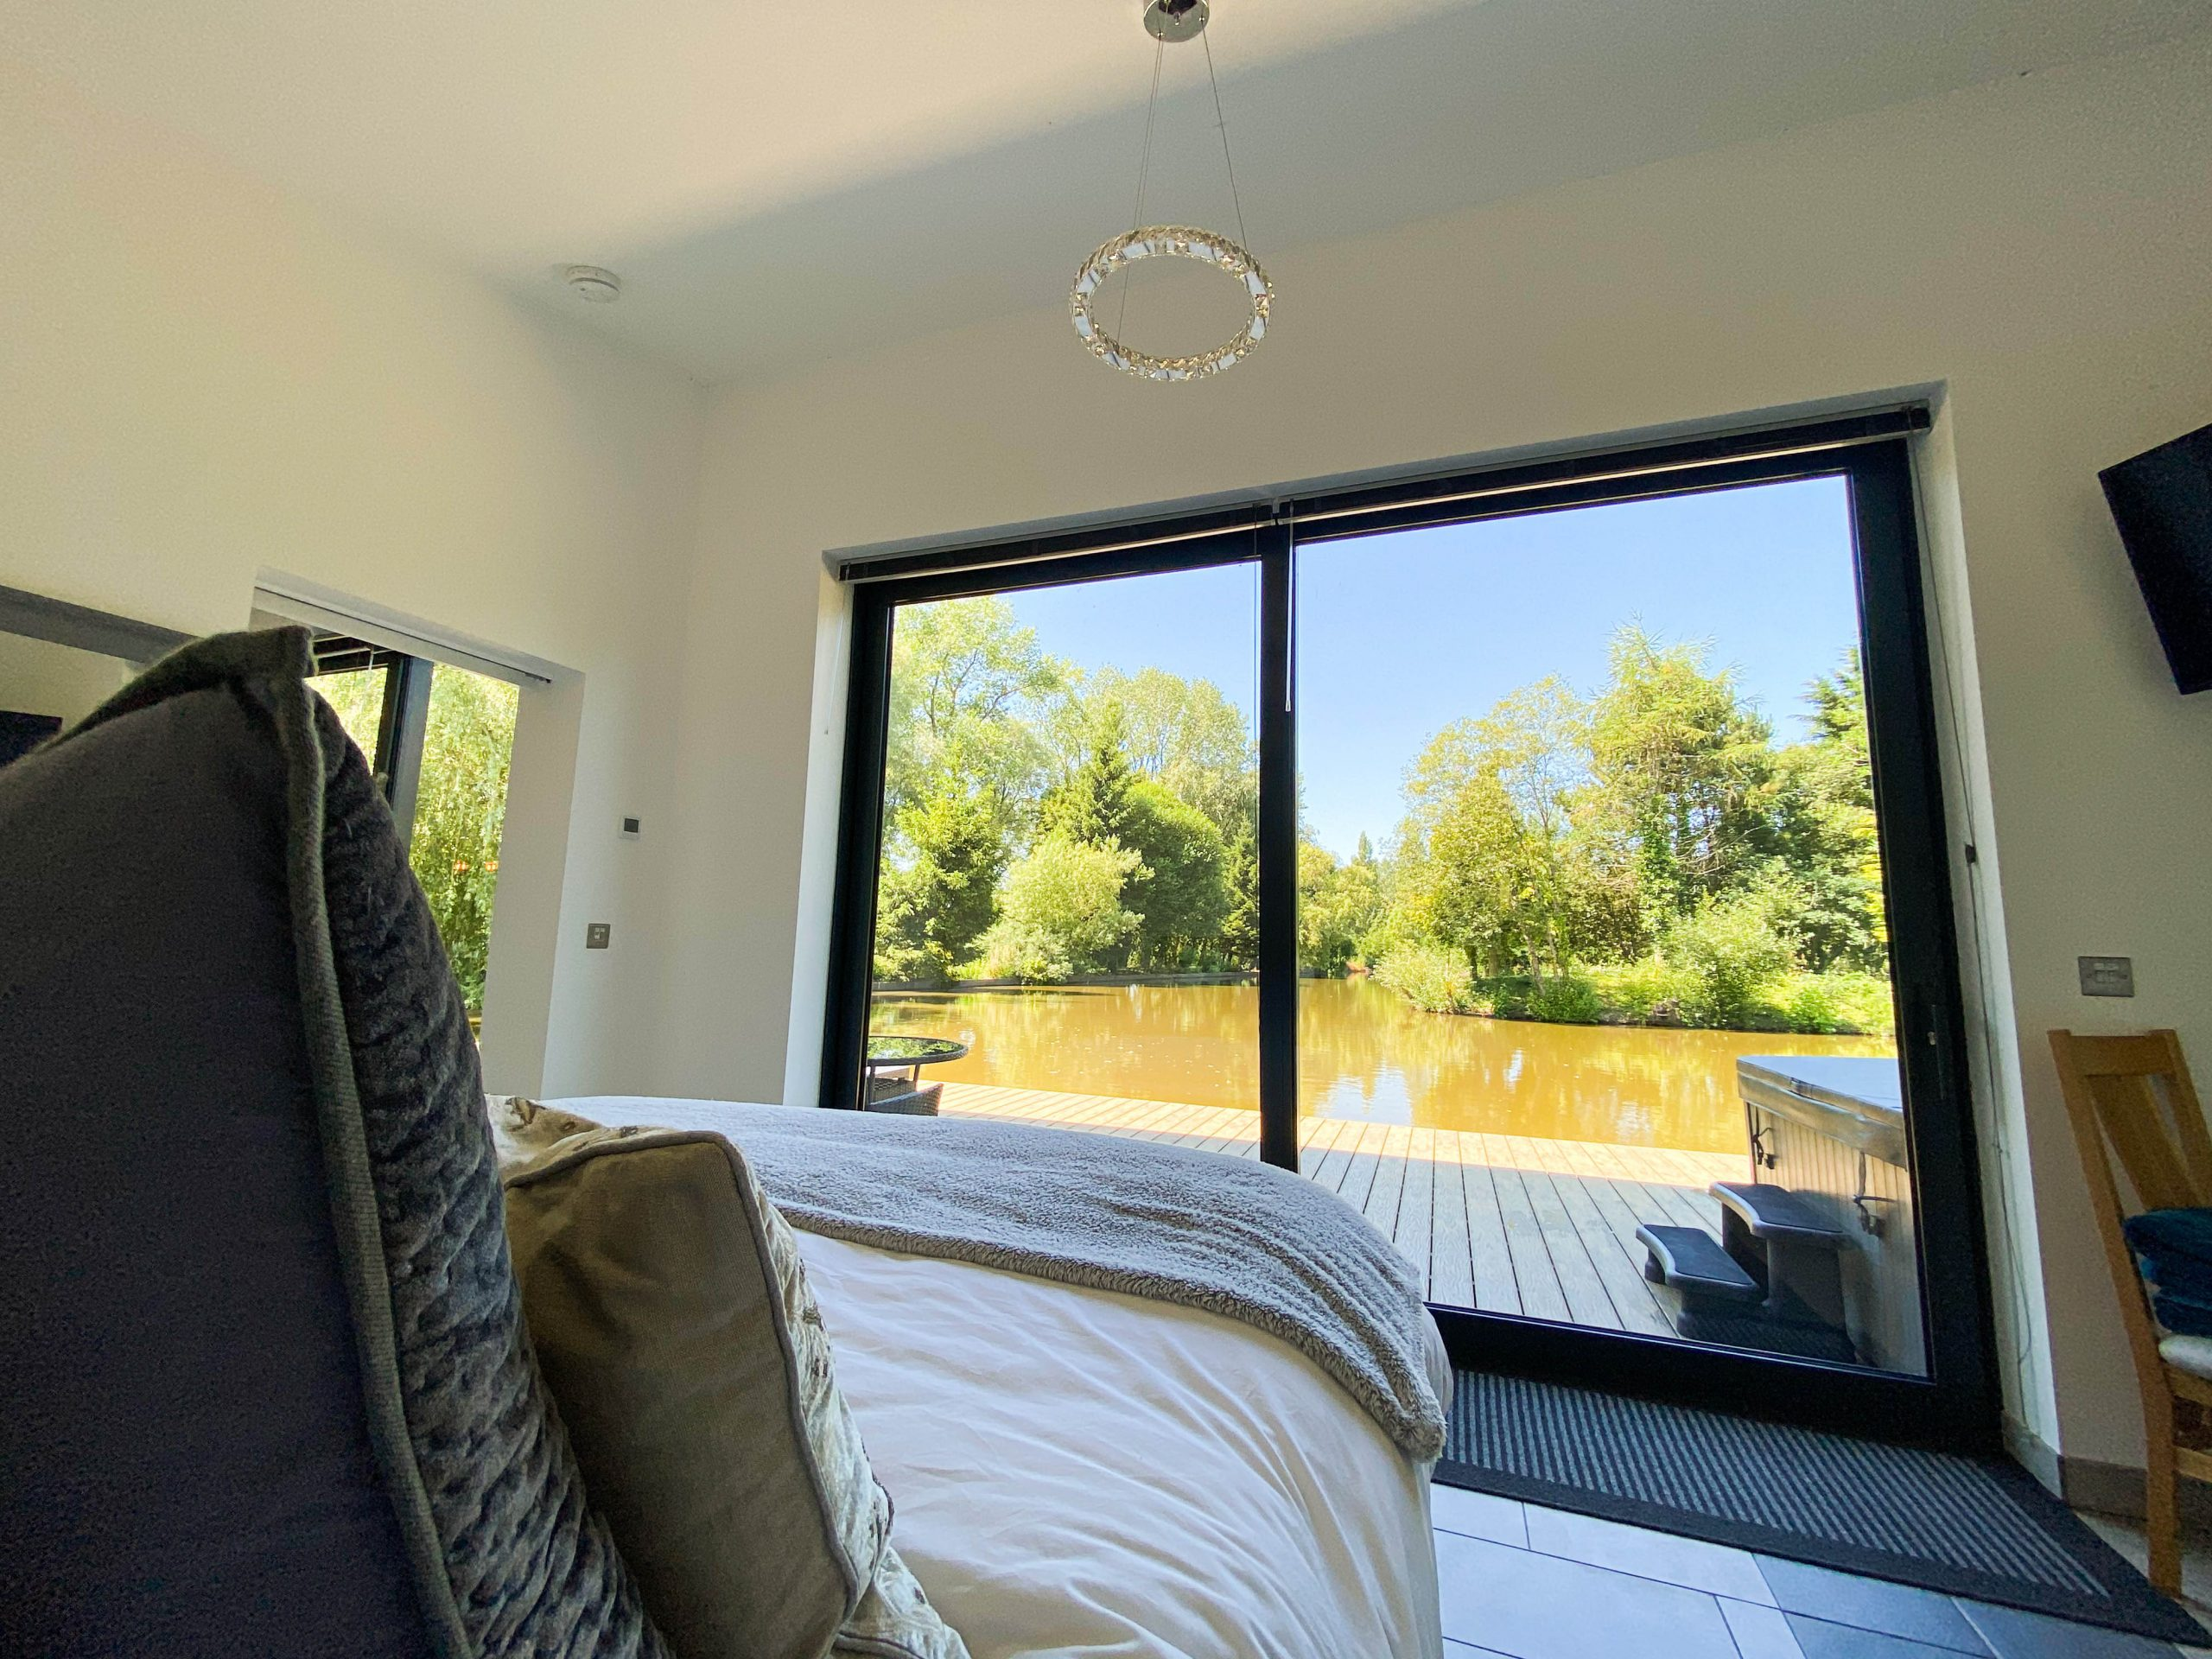 Enjoy the beautiful surroundings of Woody Park from the comfort of your bed